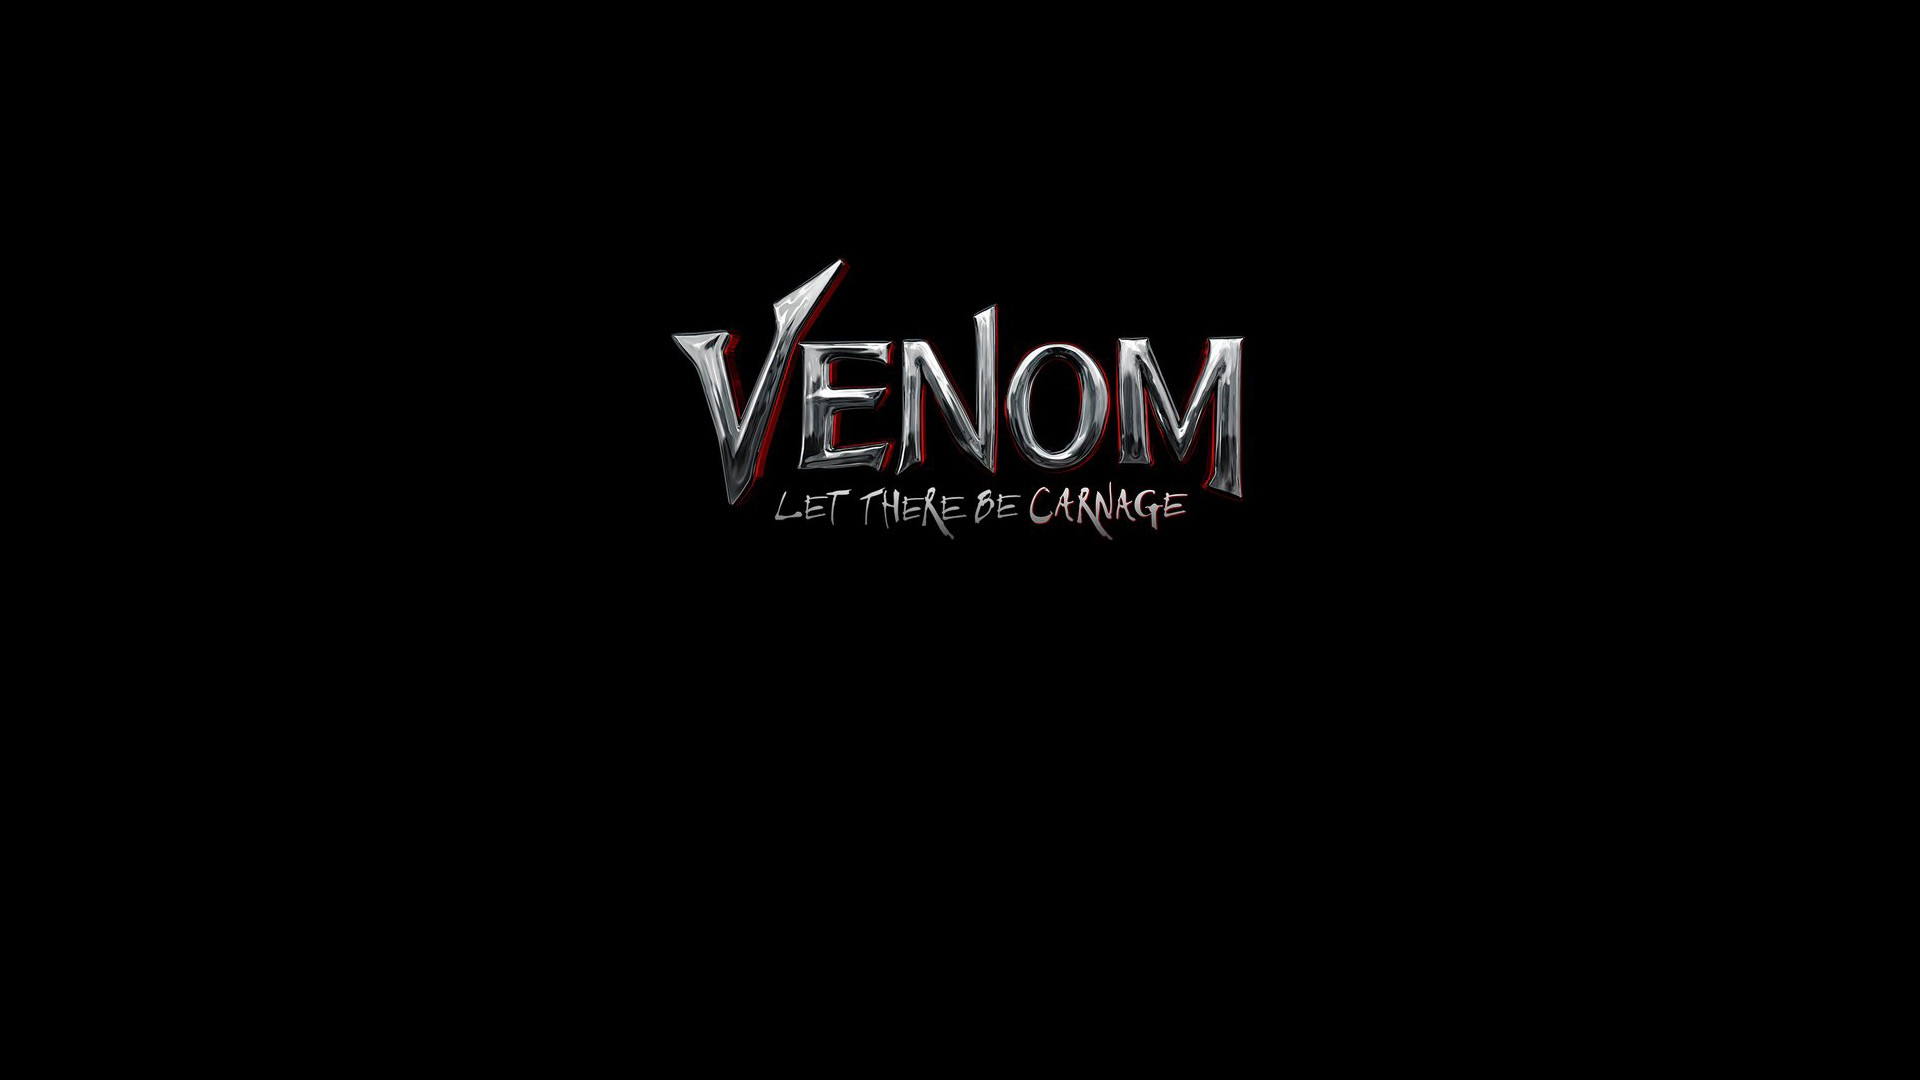 venom: let there be carnagevenom: let there be carnage